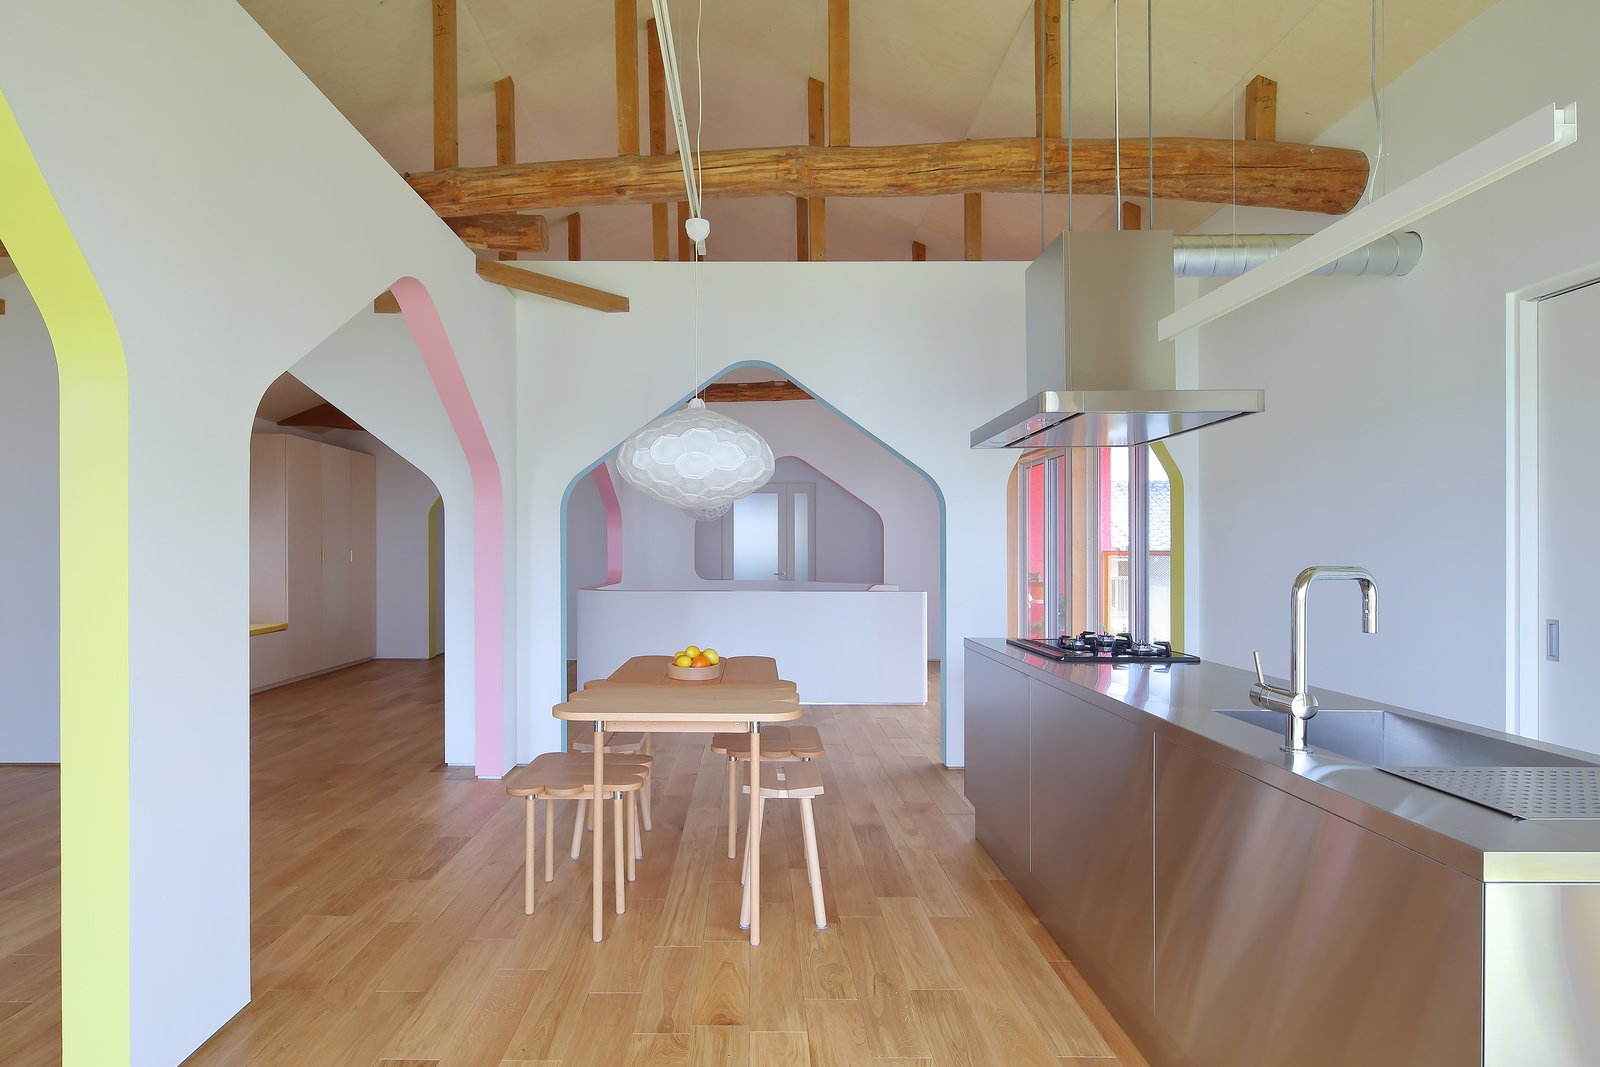 House of Many Arches kitchen